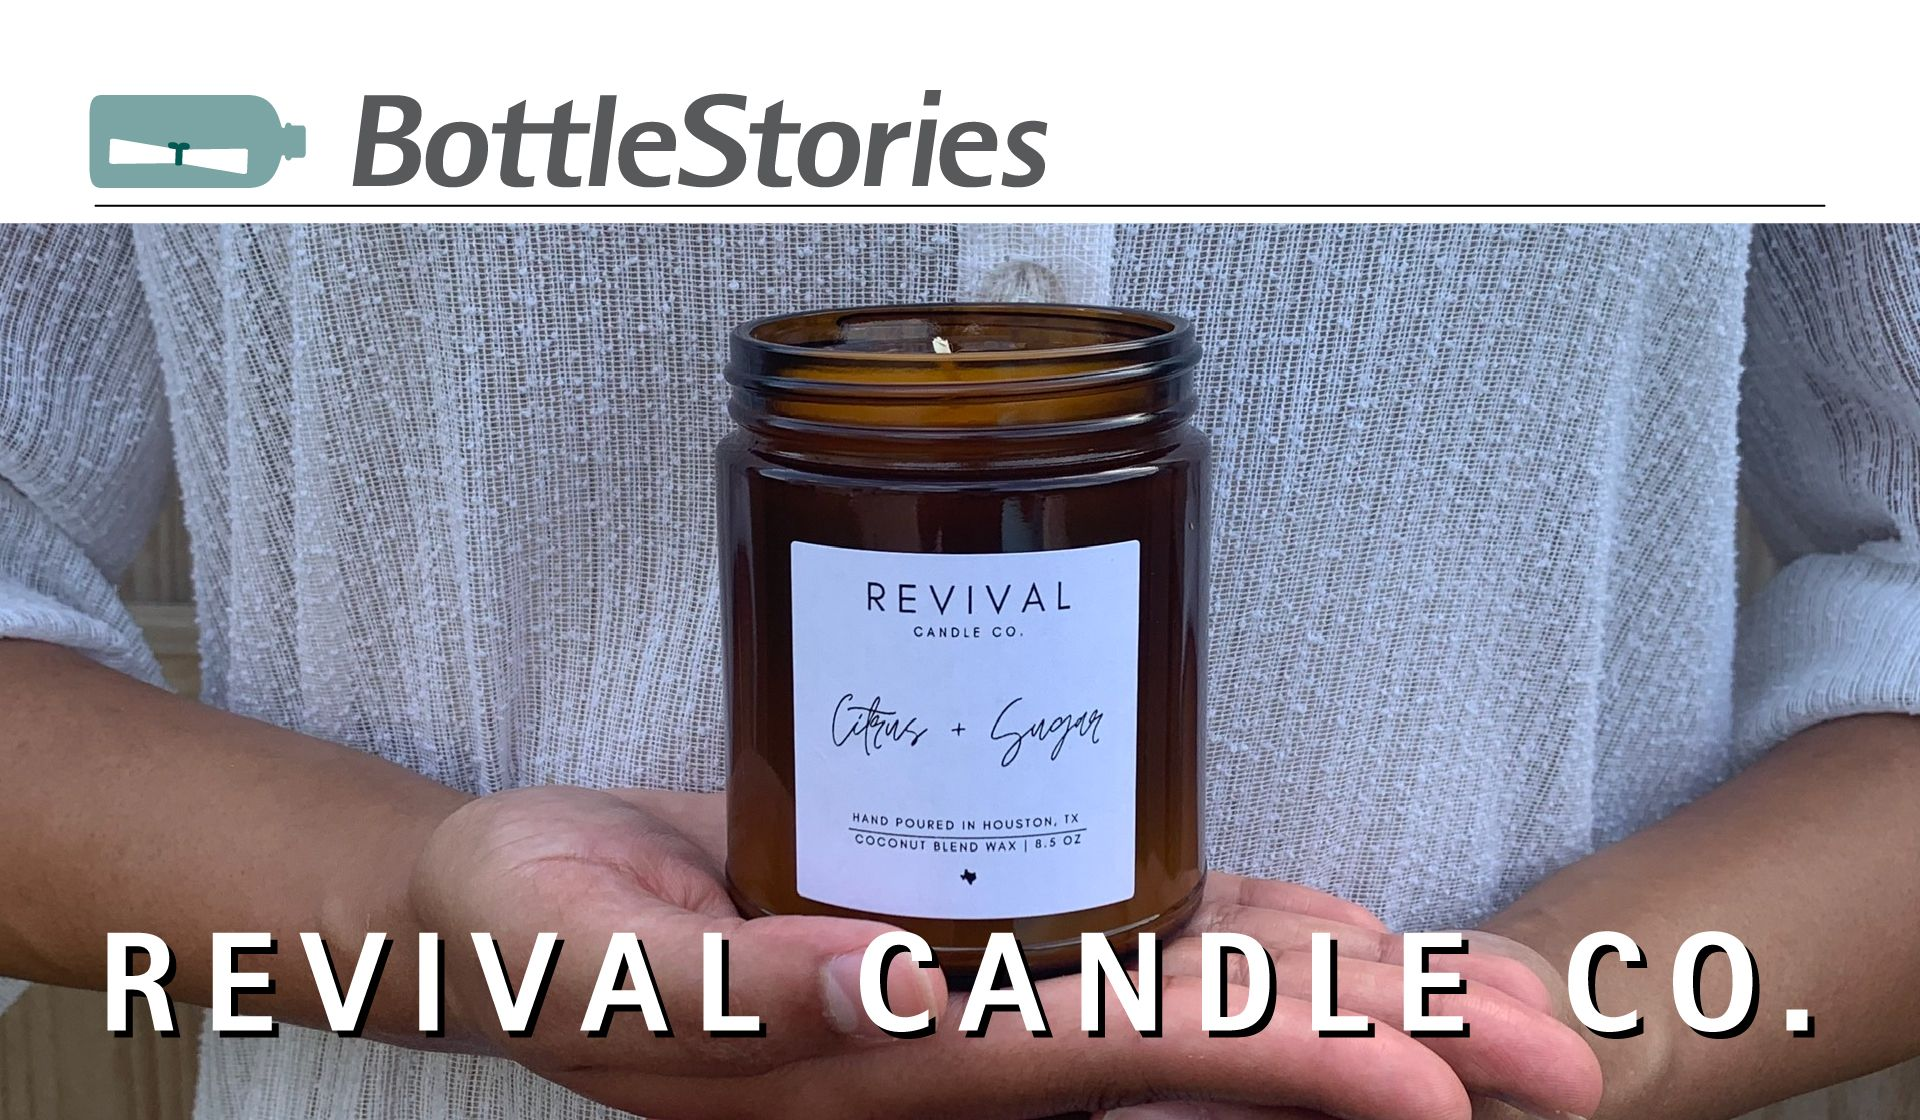 Revival Candle Co.